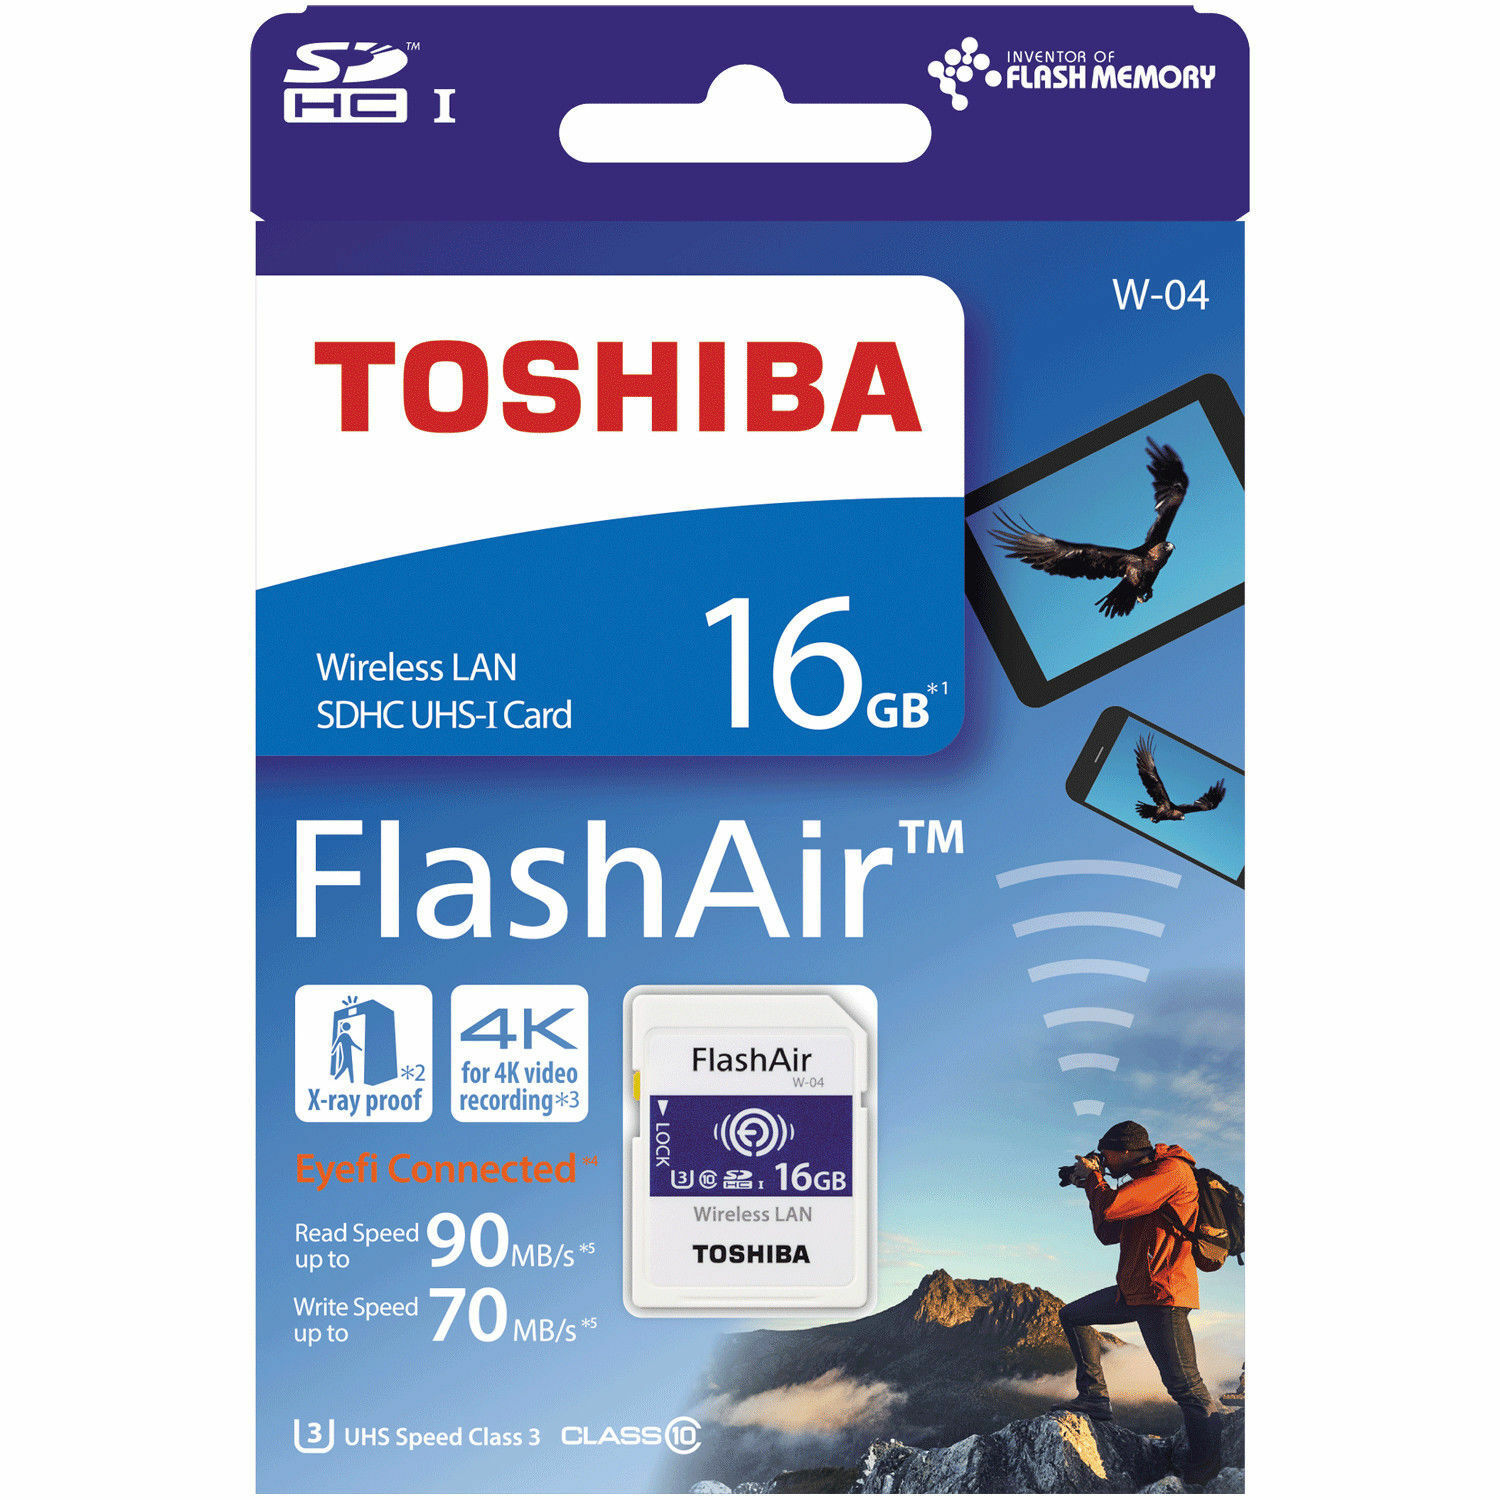 Toshiba 16GB Wi-Fi Wireless LAN FlashAir W-04 SDHC SD 90MB/s